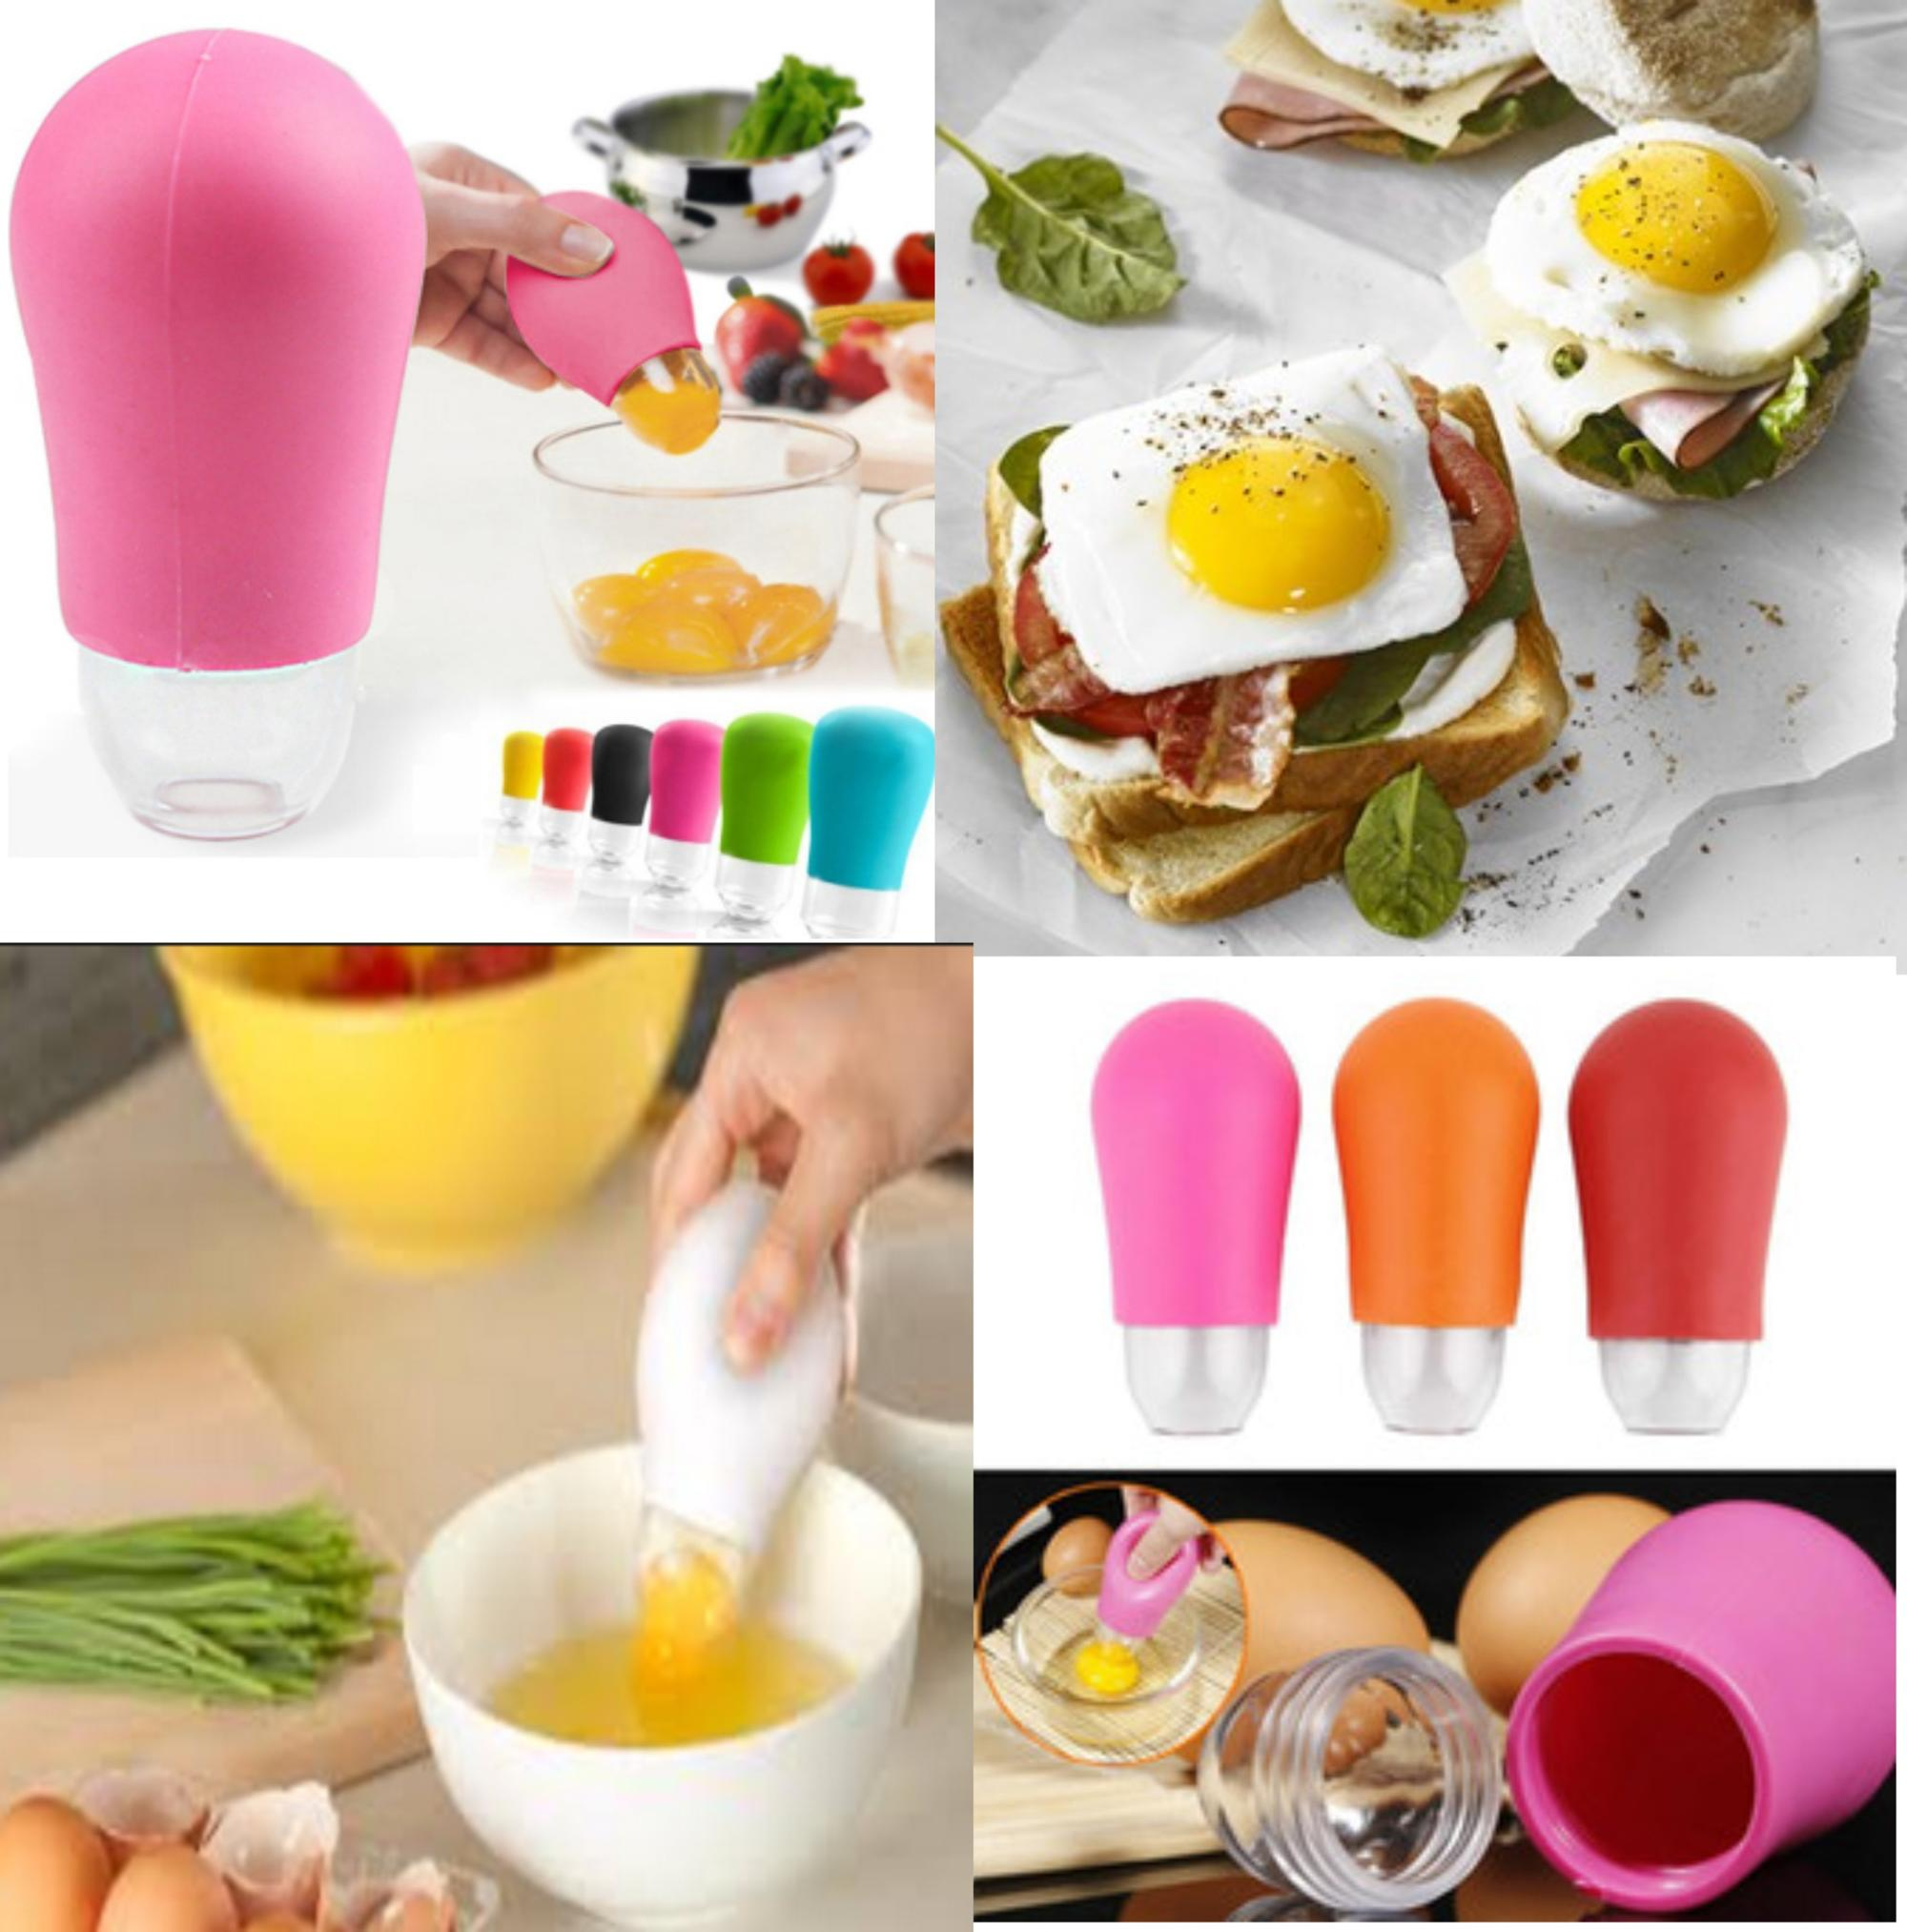 High Quality Best Seller Silicone Egg Yolk Remover Egg Yolk Separator